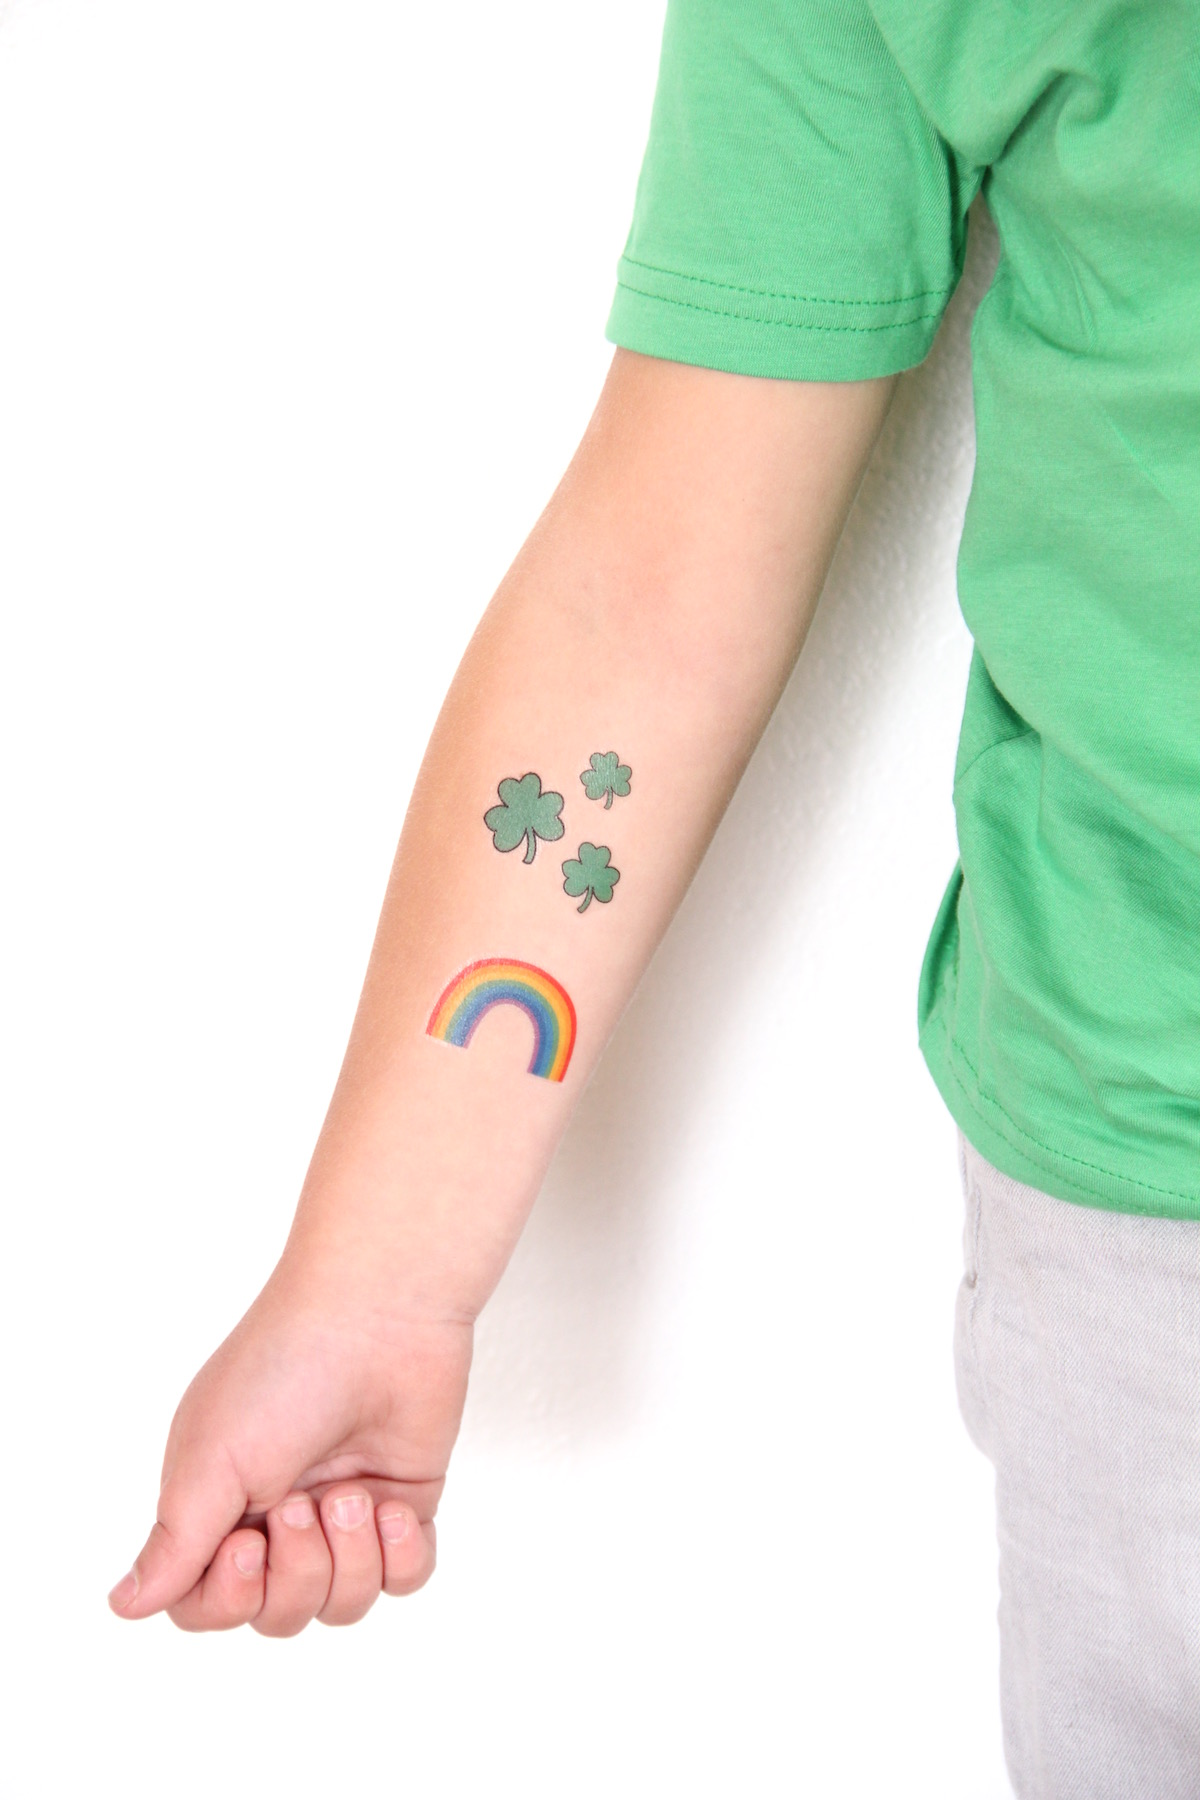 Printable St. Patrick's Day temporary tattoos (click through for download!)